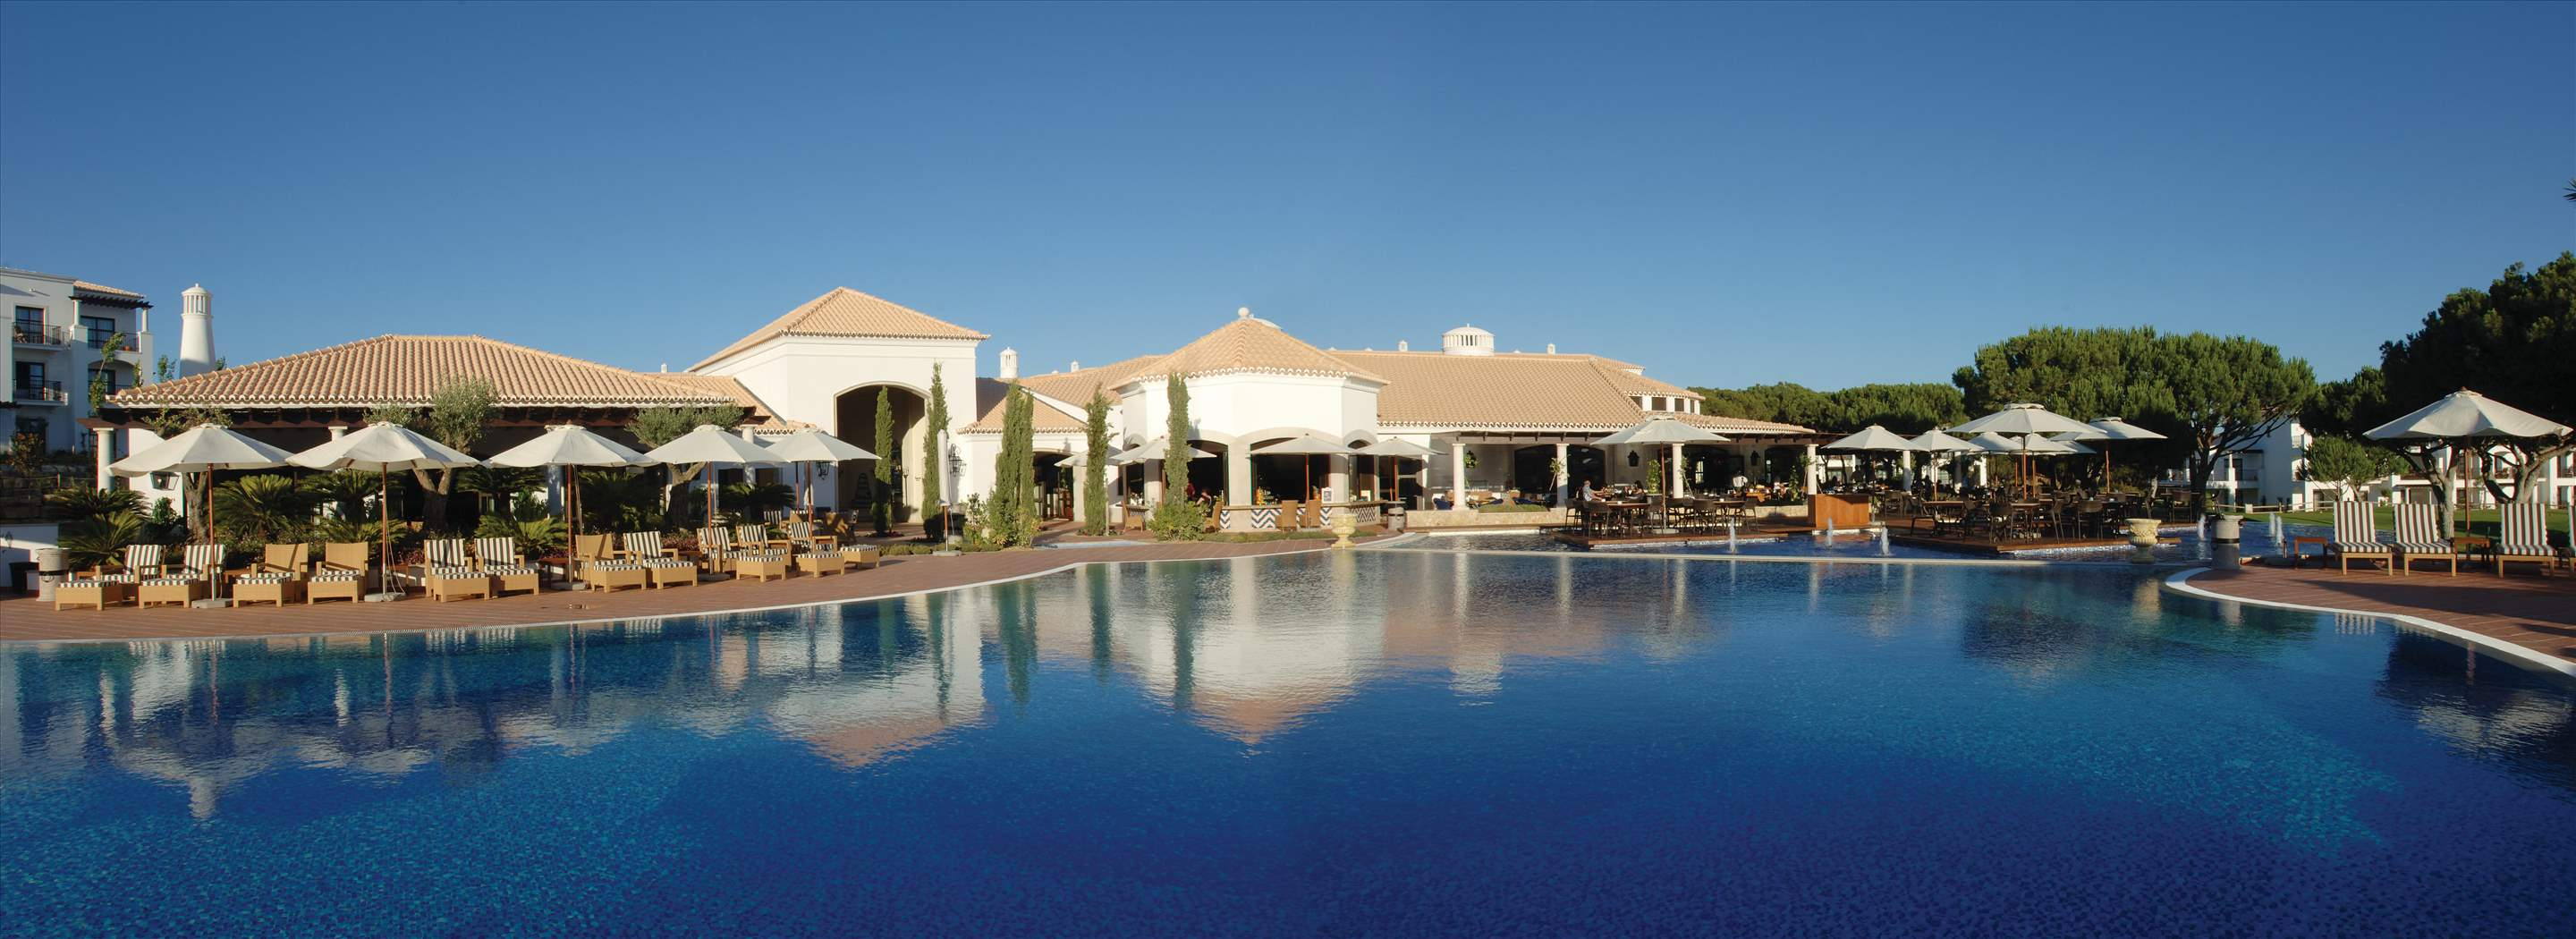 Pine Cliffs Residence, Penthouse 2 bed luxury suite, 2 bedroom apartment in Pine Cliffs Resort, Algarve Photo #3